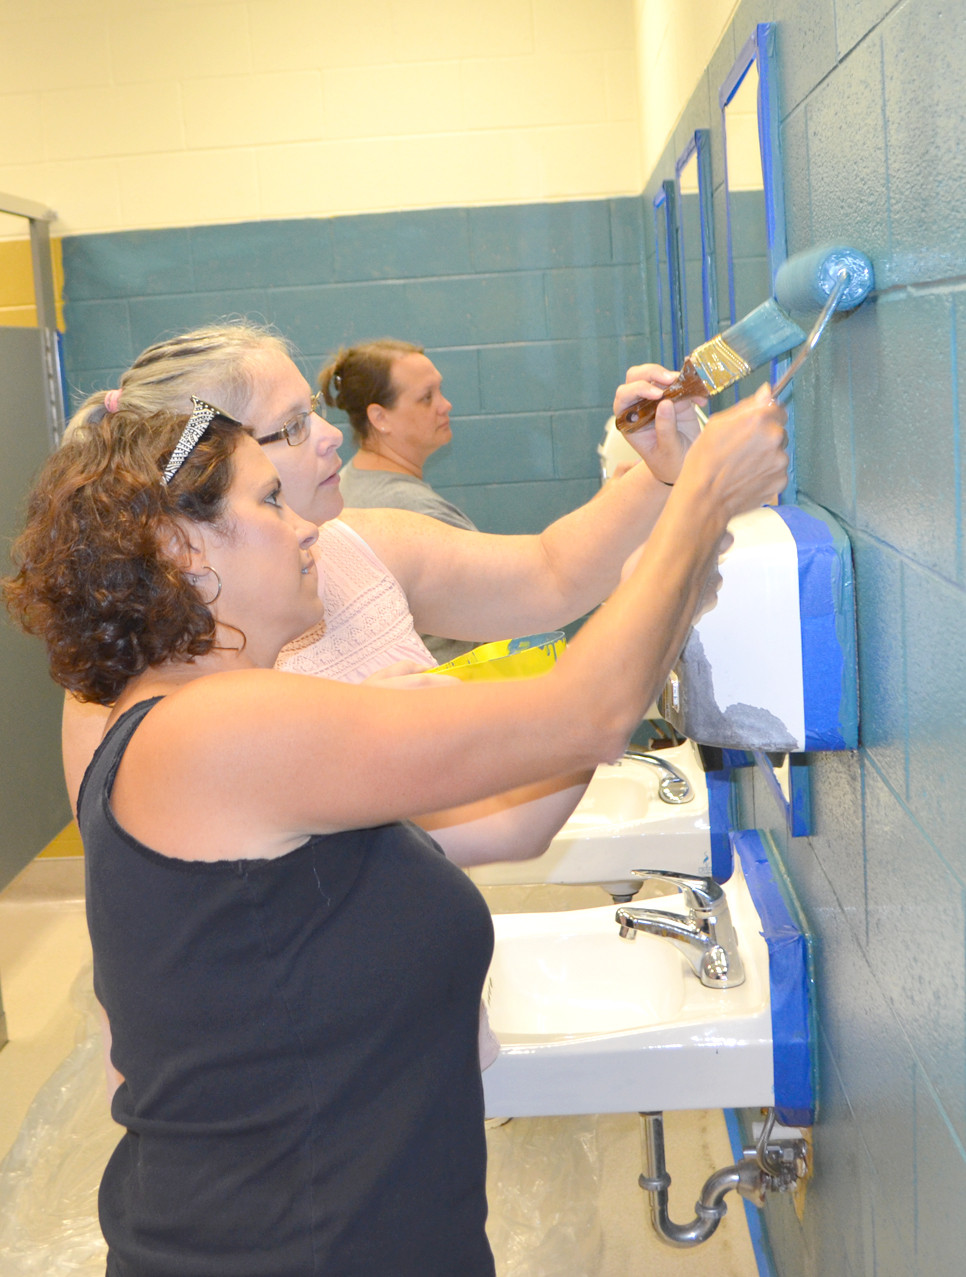 TAMARA BRADLEY, foreground, worked alongside Dawn Staff, president of the Parent-Teacher-Student Organization, to repaint walls in the girls' bathrooms at Woodford County Middle School last Wednesday morning. Jaime Cheek is also pictured. (Photo by Bob Vlach)